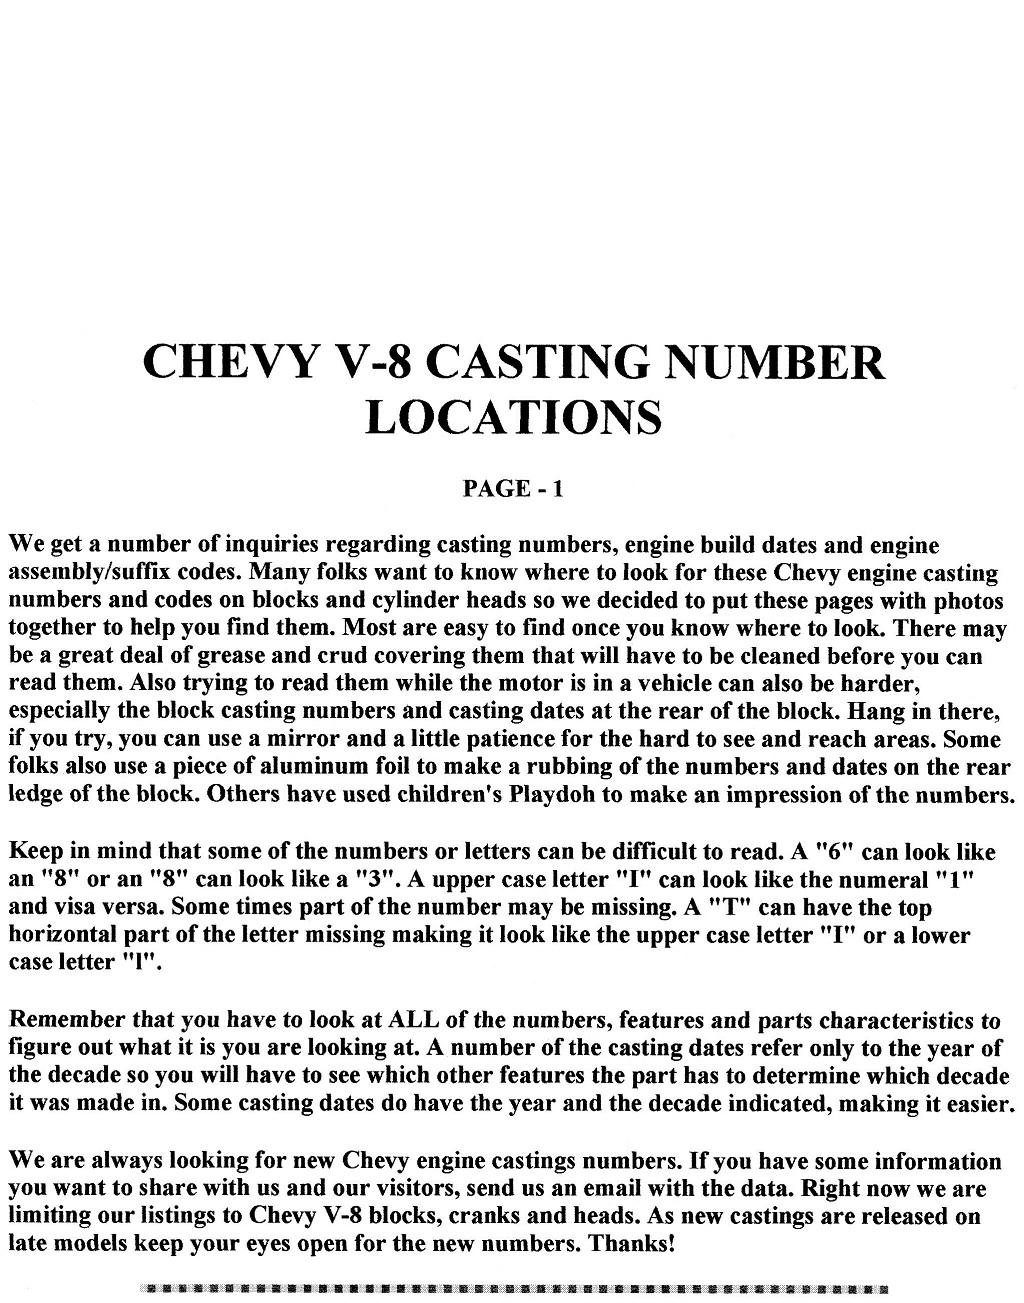 CHEVROLET SMALL BLOCK, BLOCK AND HEAD CASTING NUMBERS